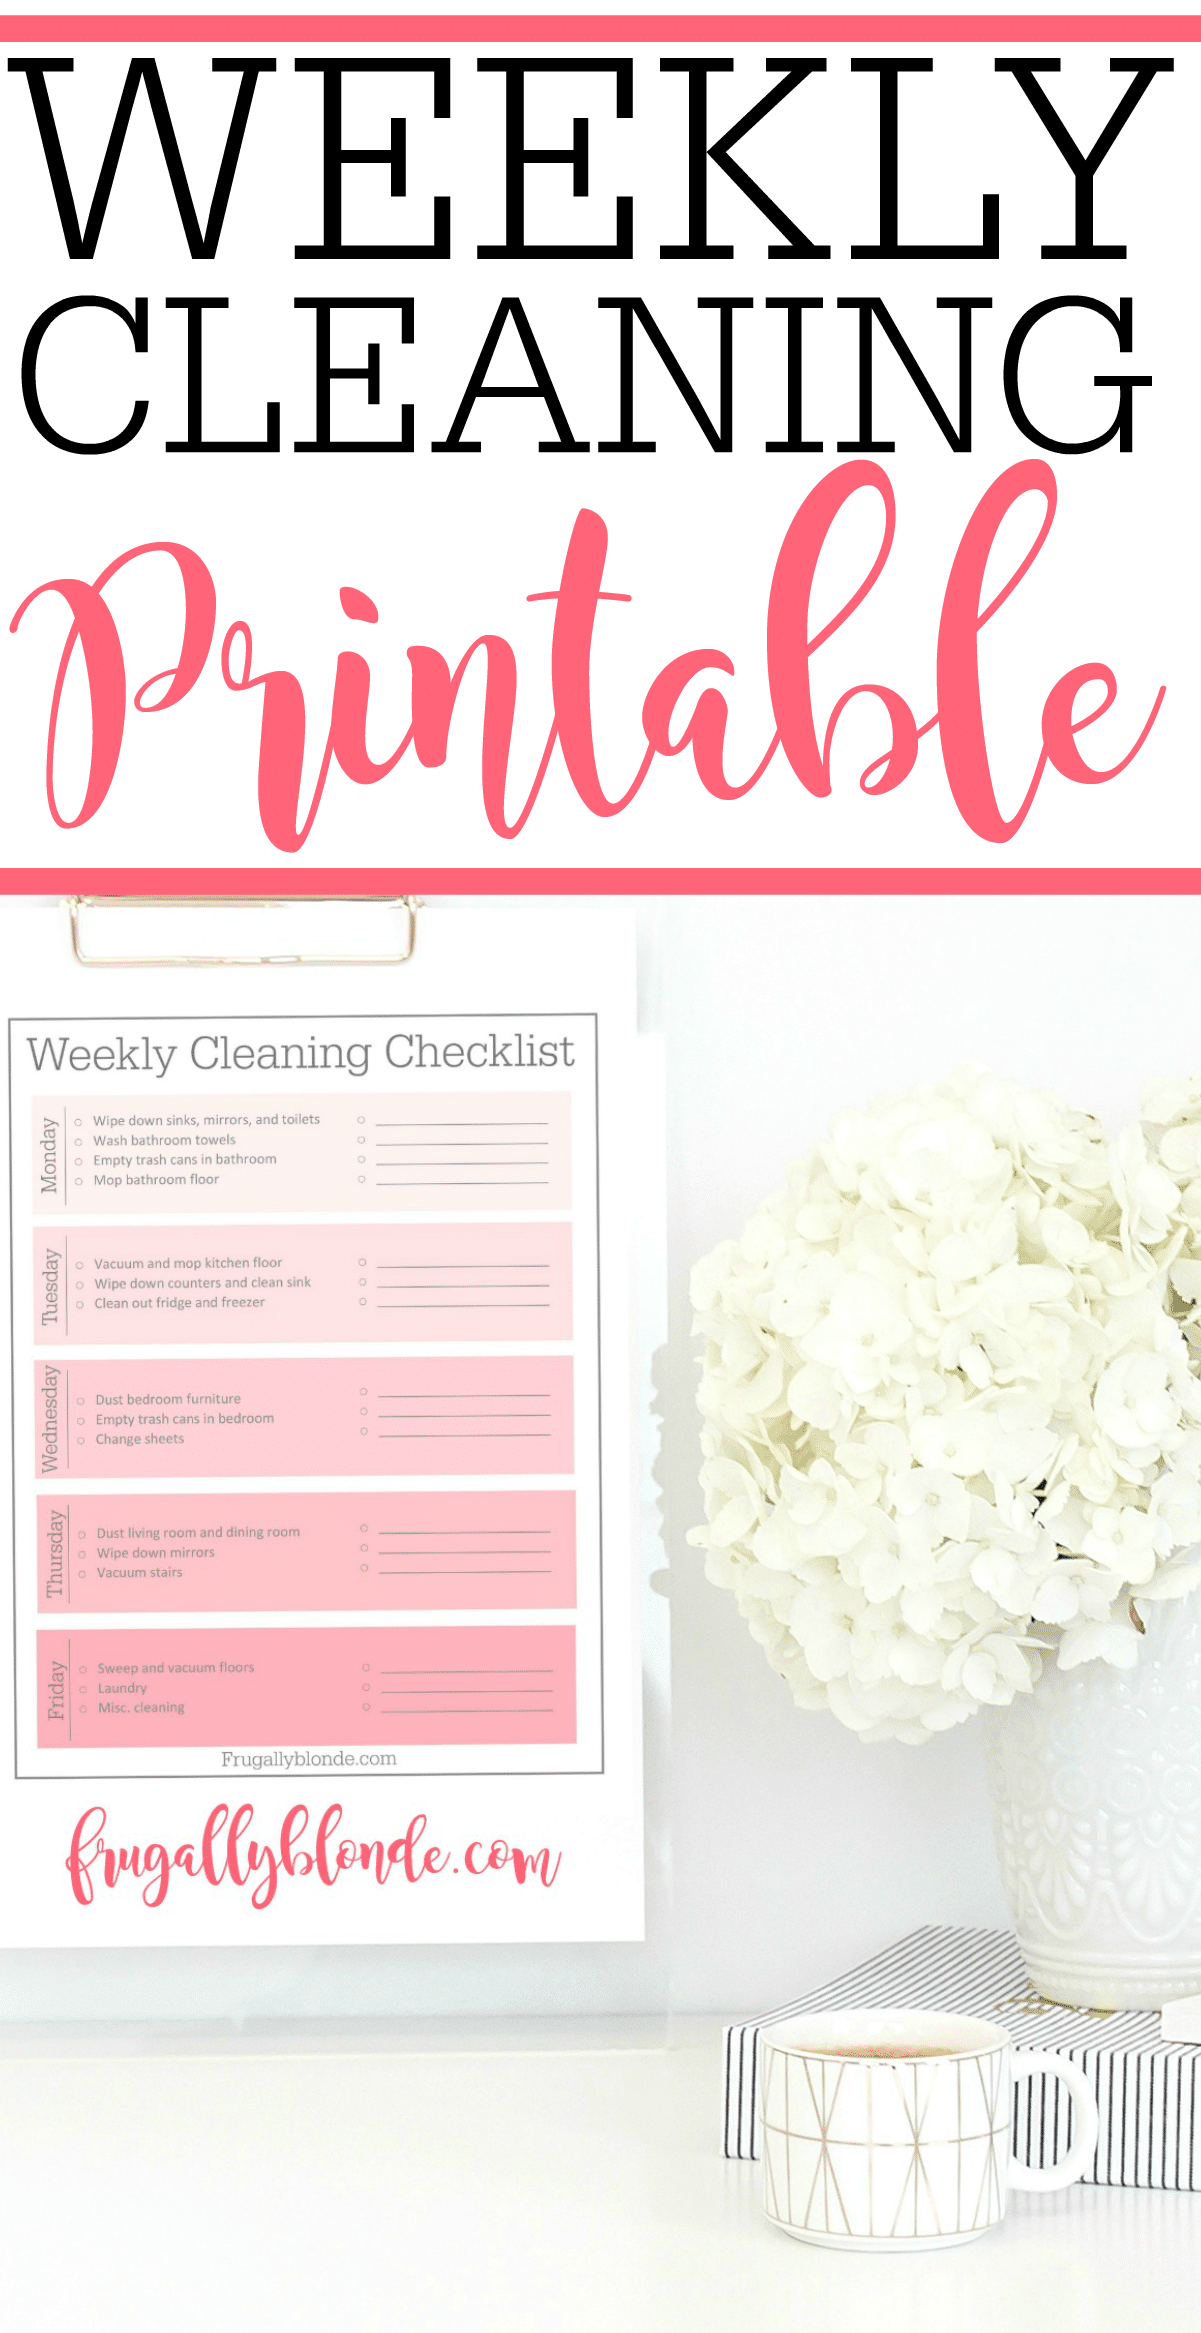 Weekly Cleaning Schedule Printable - Frugally Blonde